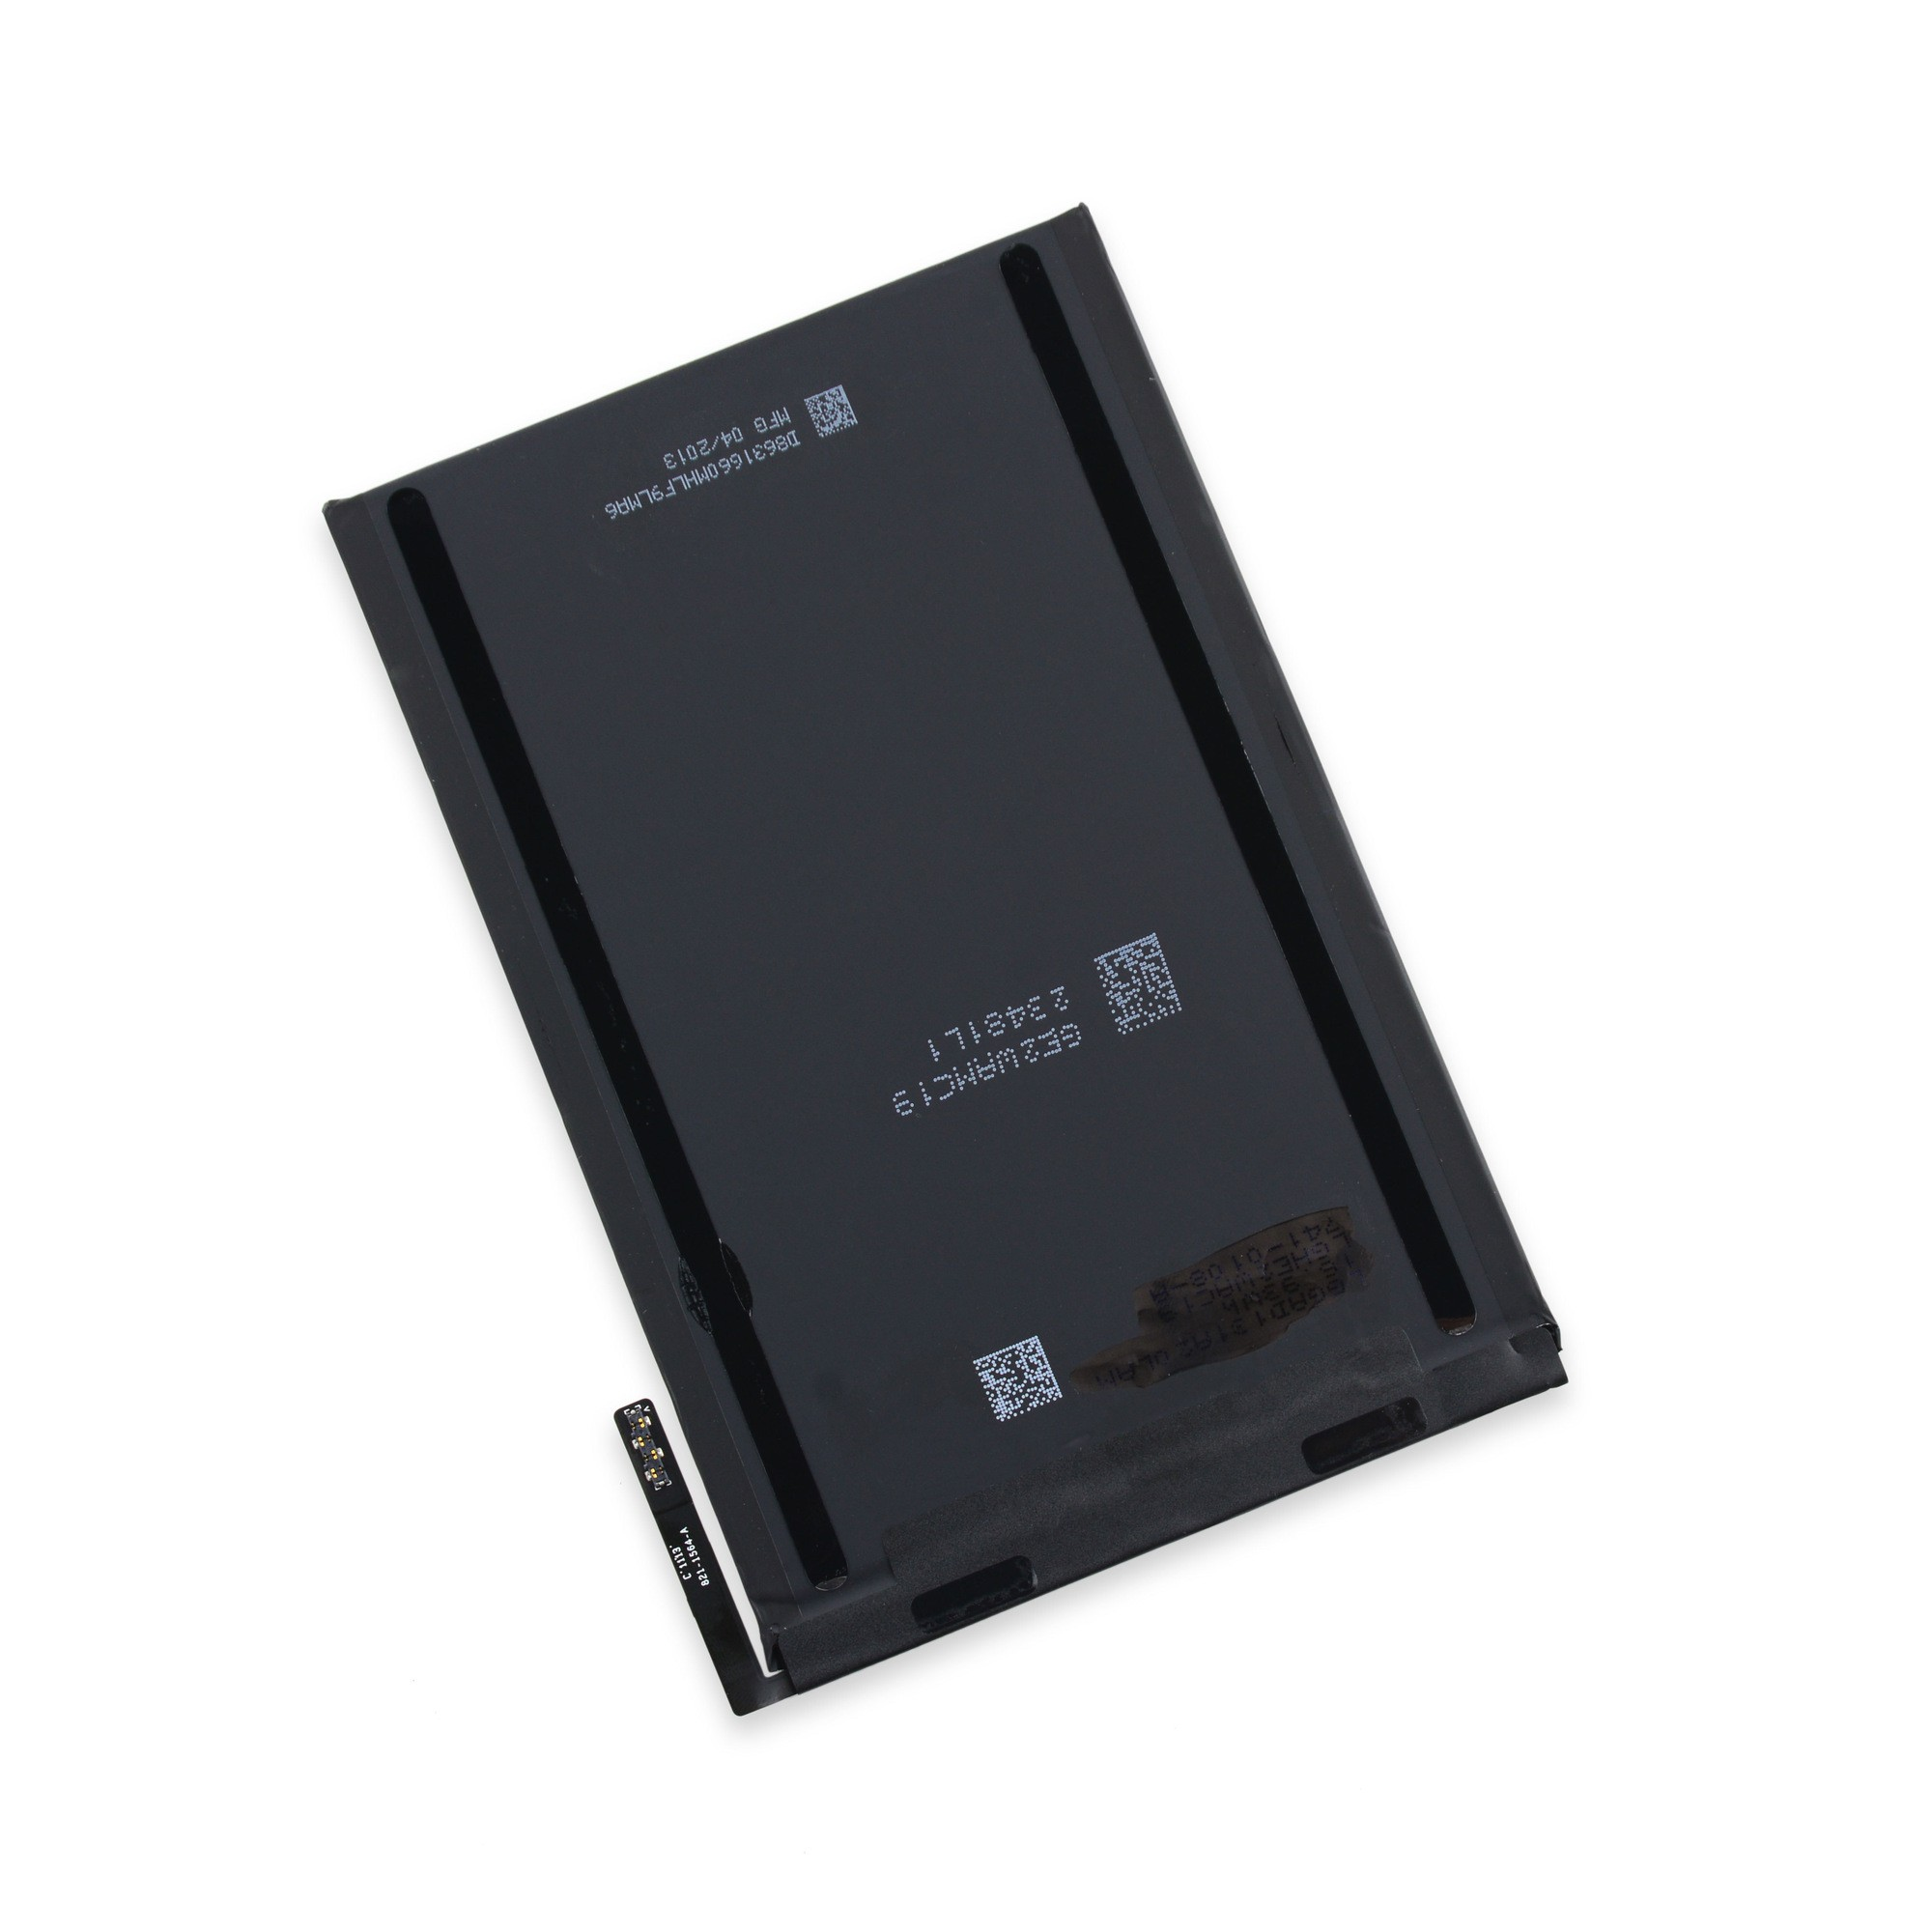 iPad mini Battery, Part Only, New, IF122-023-1